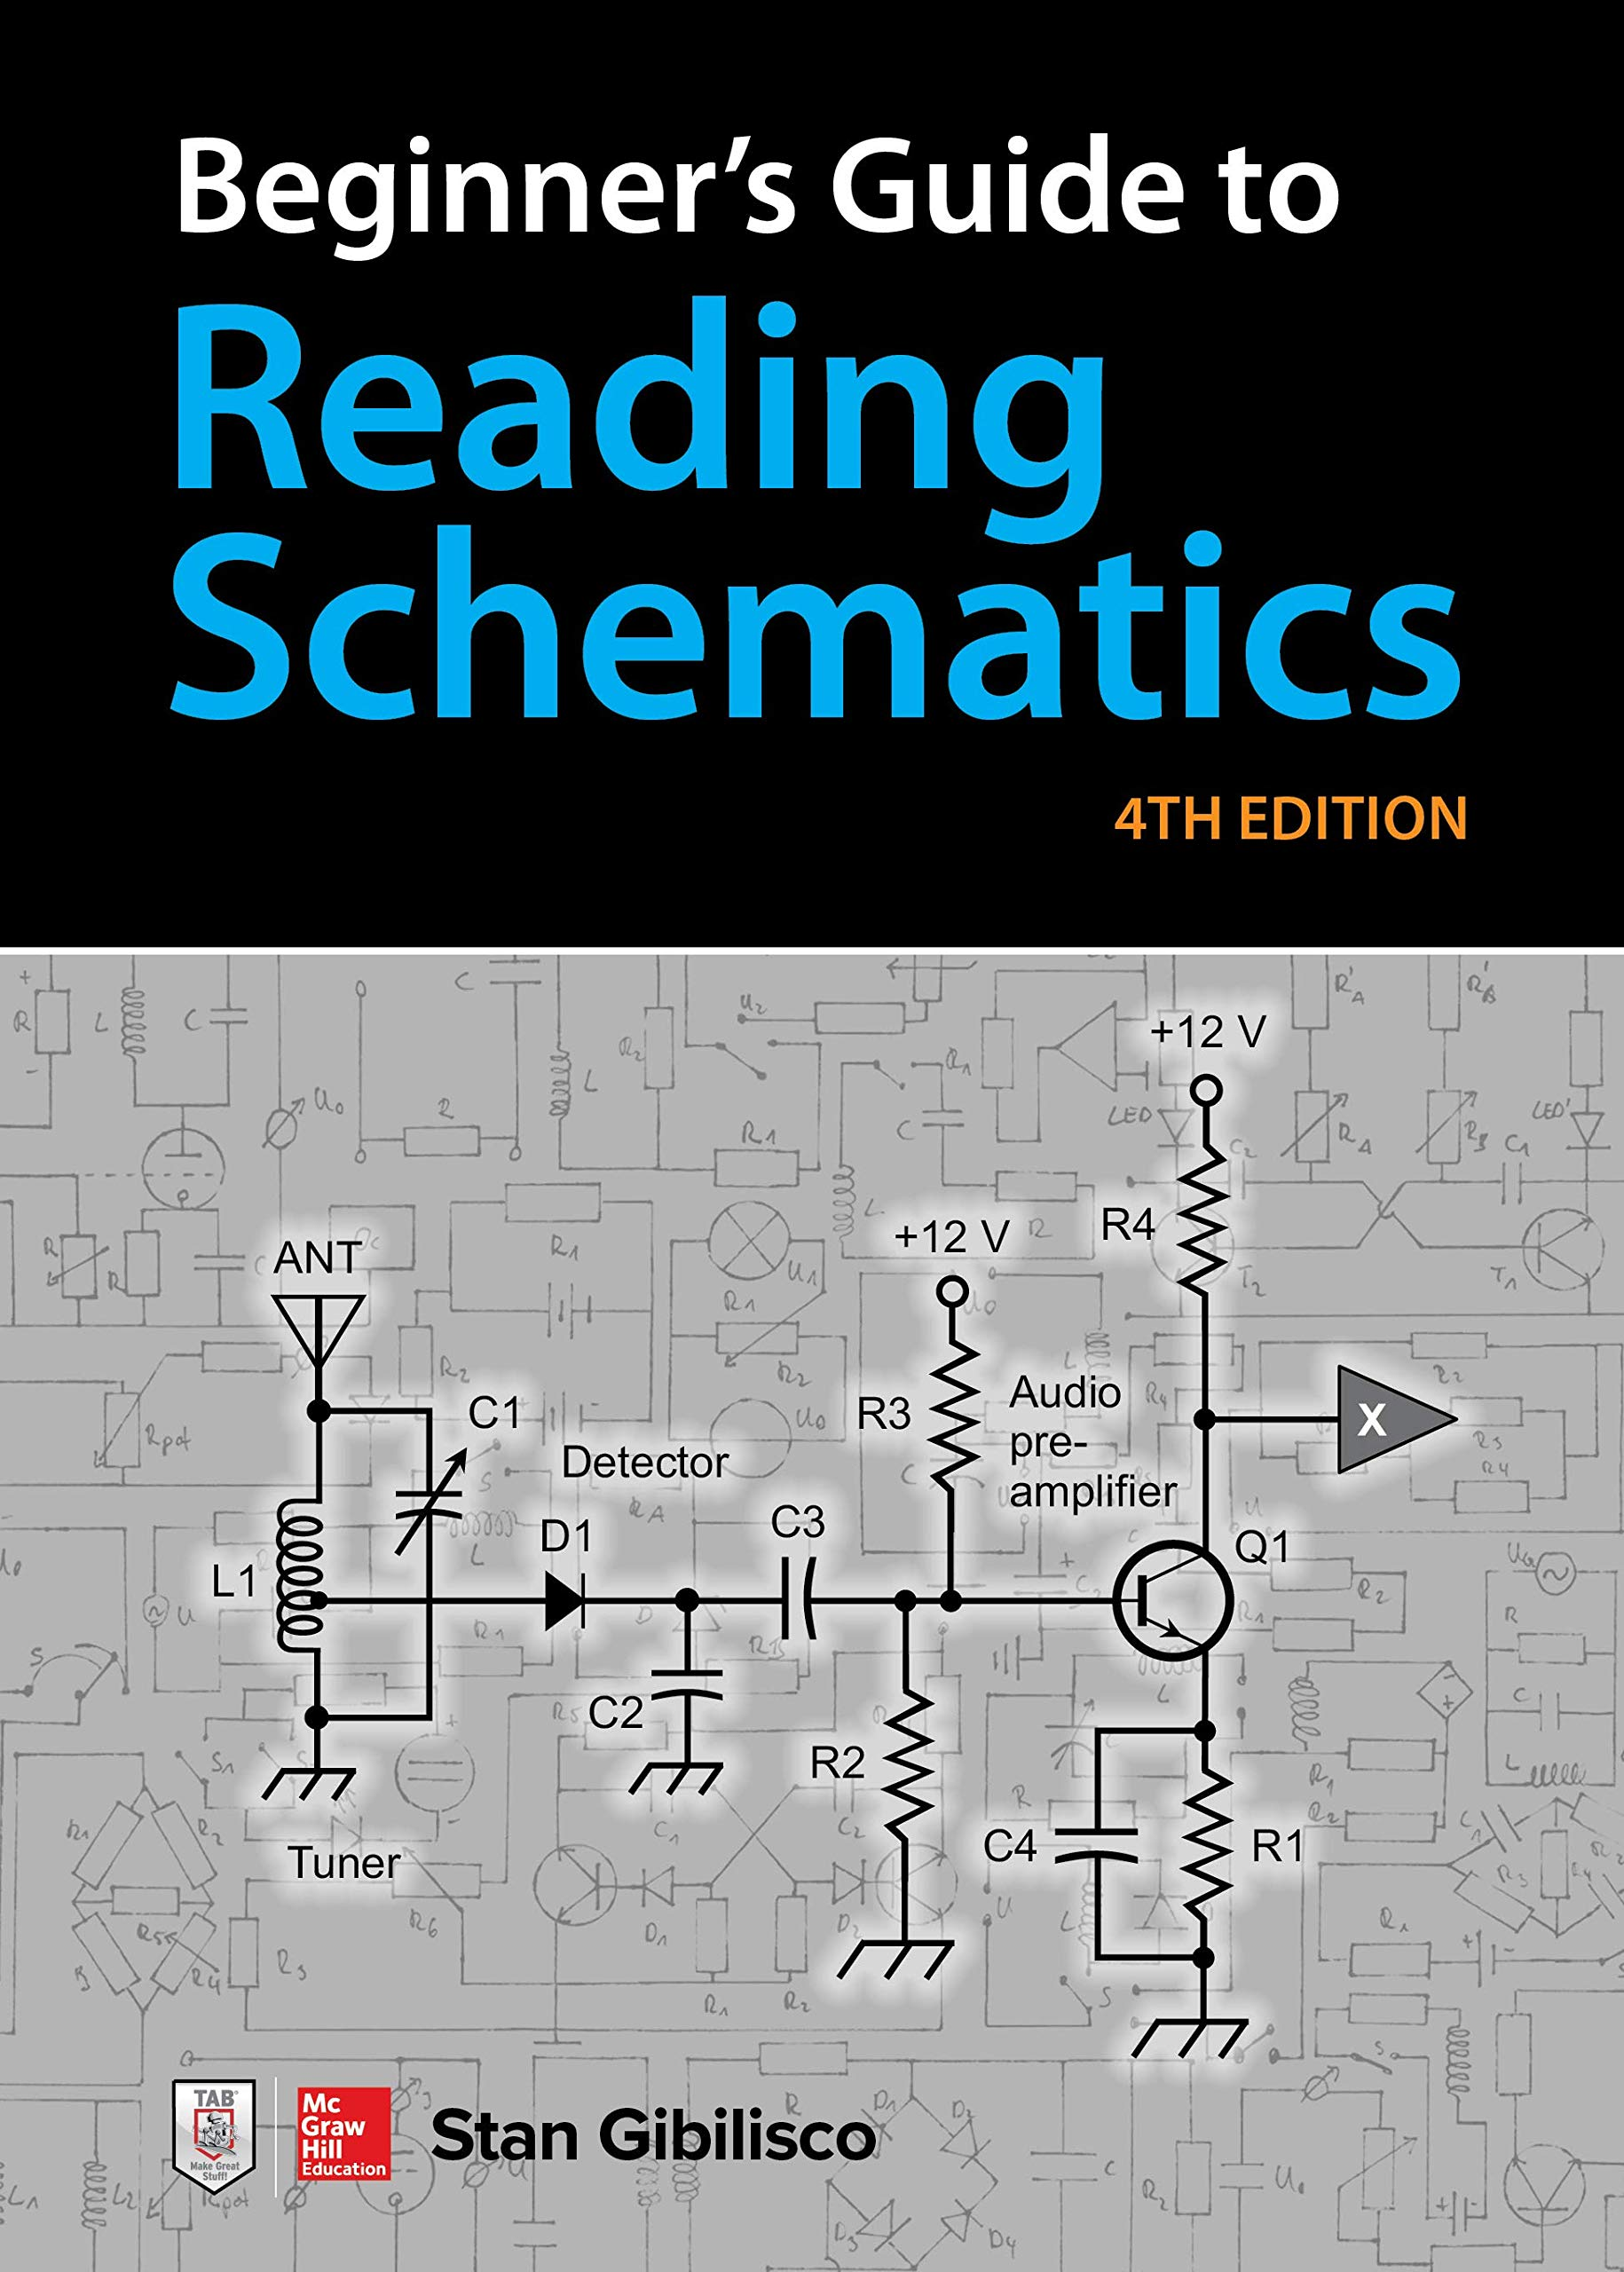 Book Cover of Beginner's Guide to Reading Schematics - Click to open book in a new window